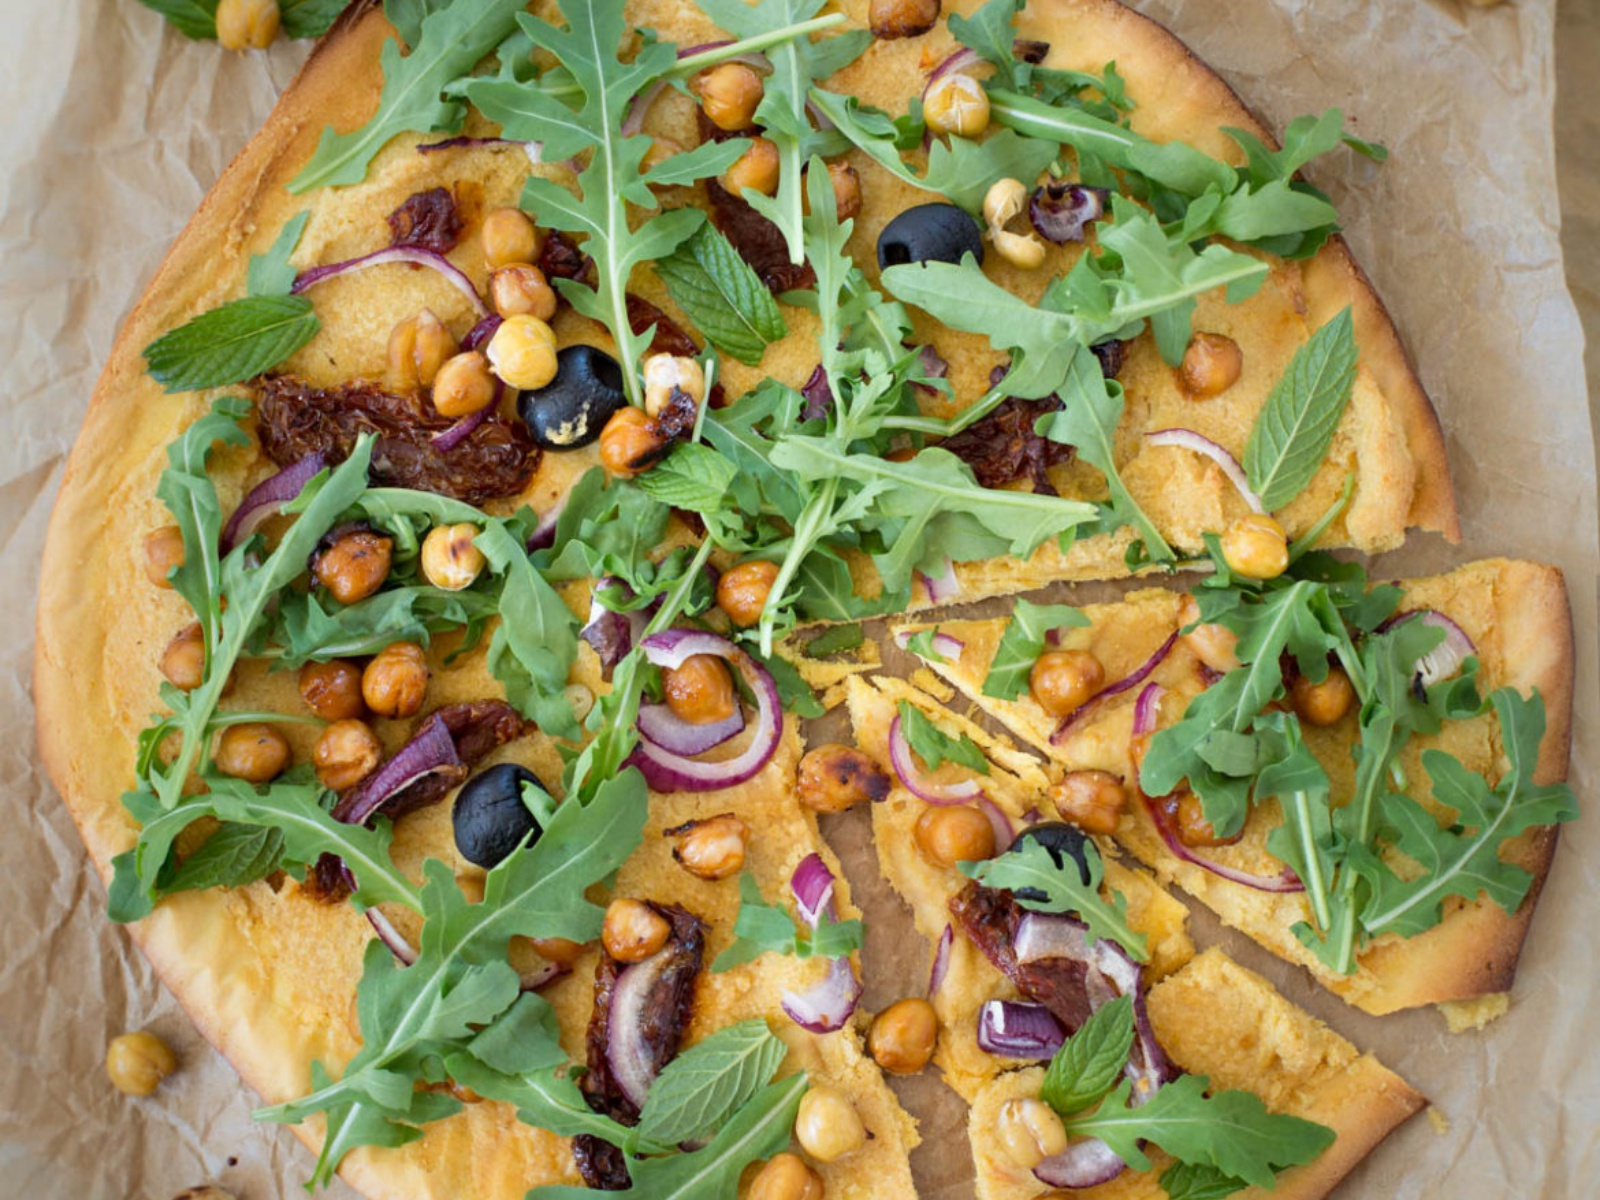 Chickpea Flour Pizza with Hummus, Sun-Dried Tomatoes and Rocket